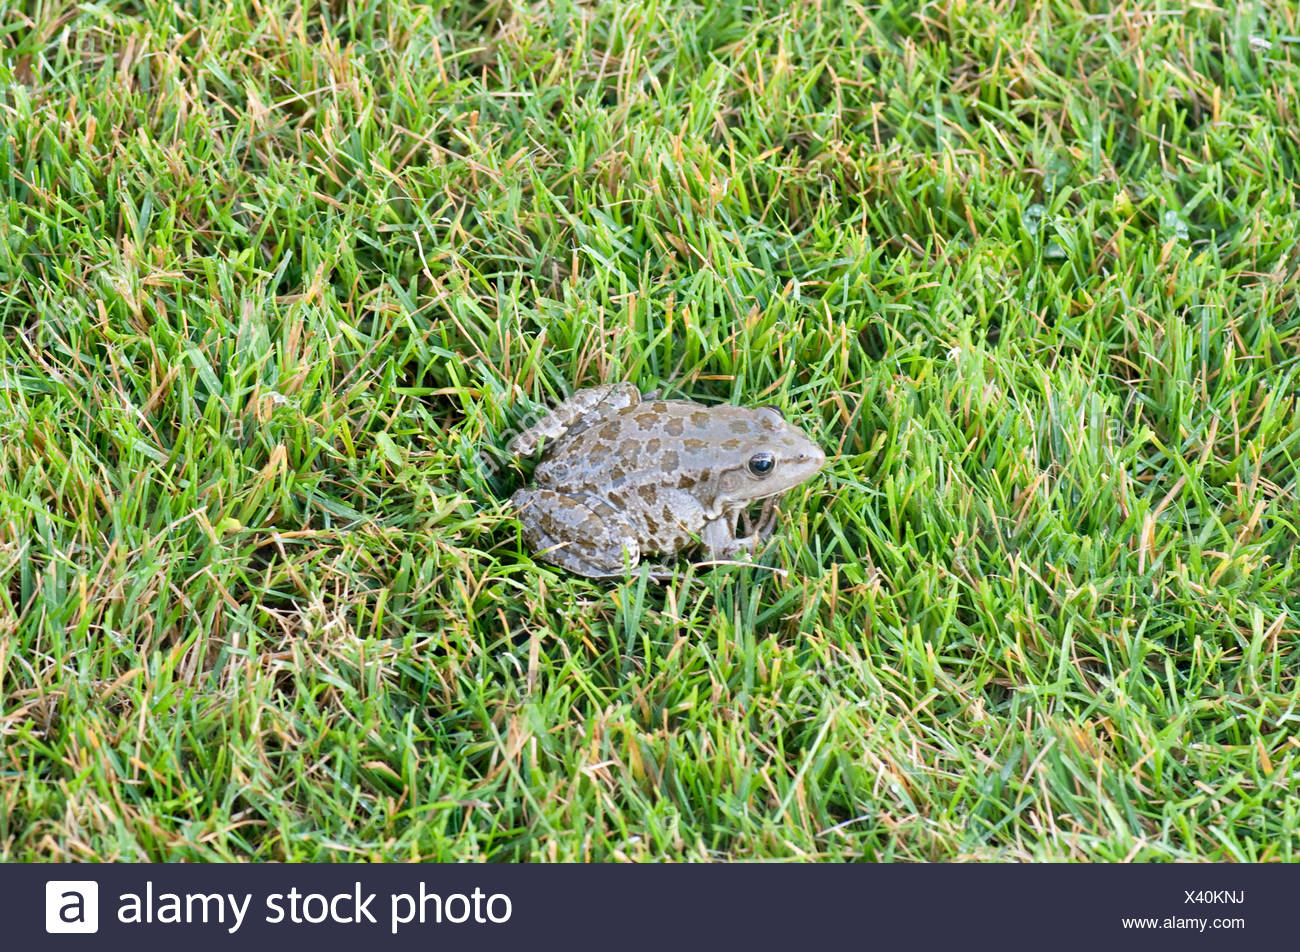 Marsh Frog, Pelophylax ridibundus, Danube Delta, Romania, sitting in grass on river bank - Stock Image